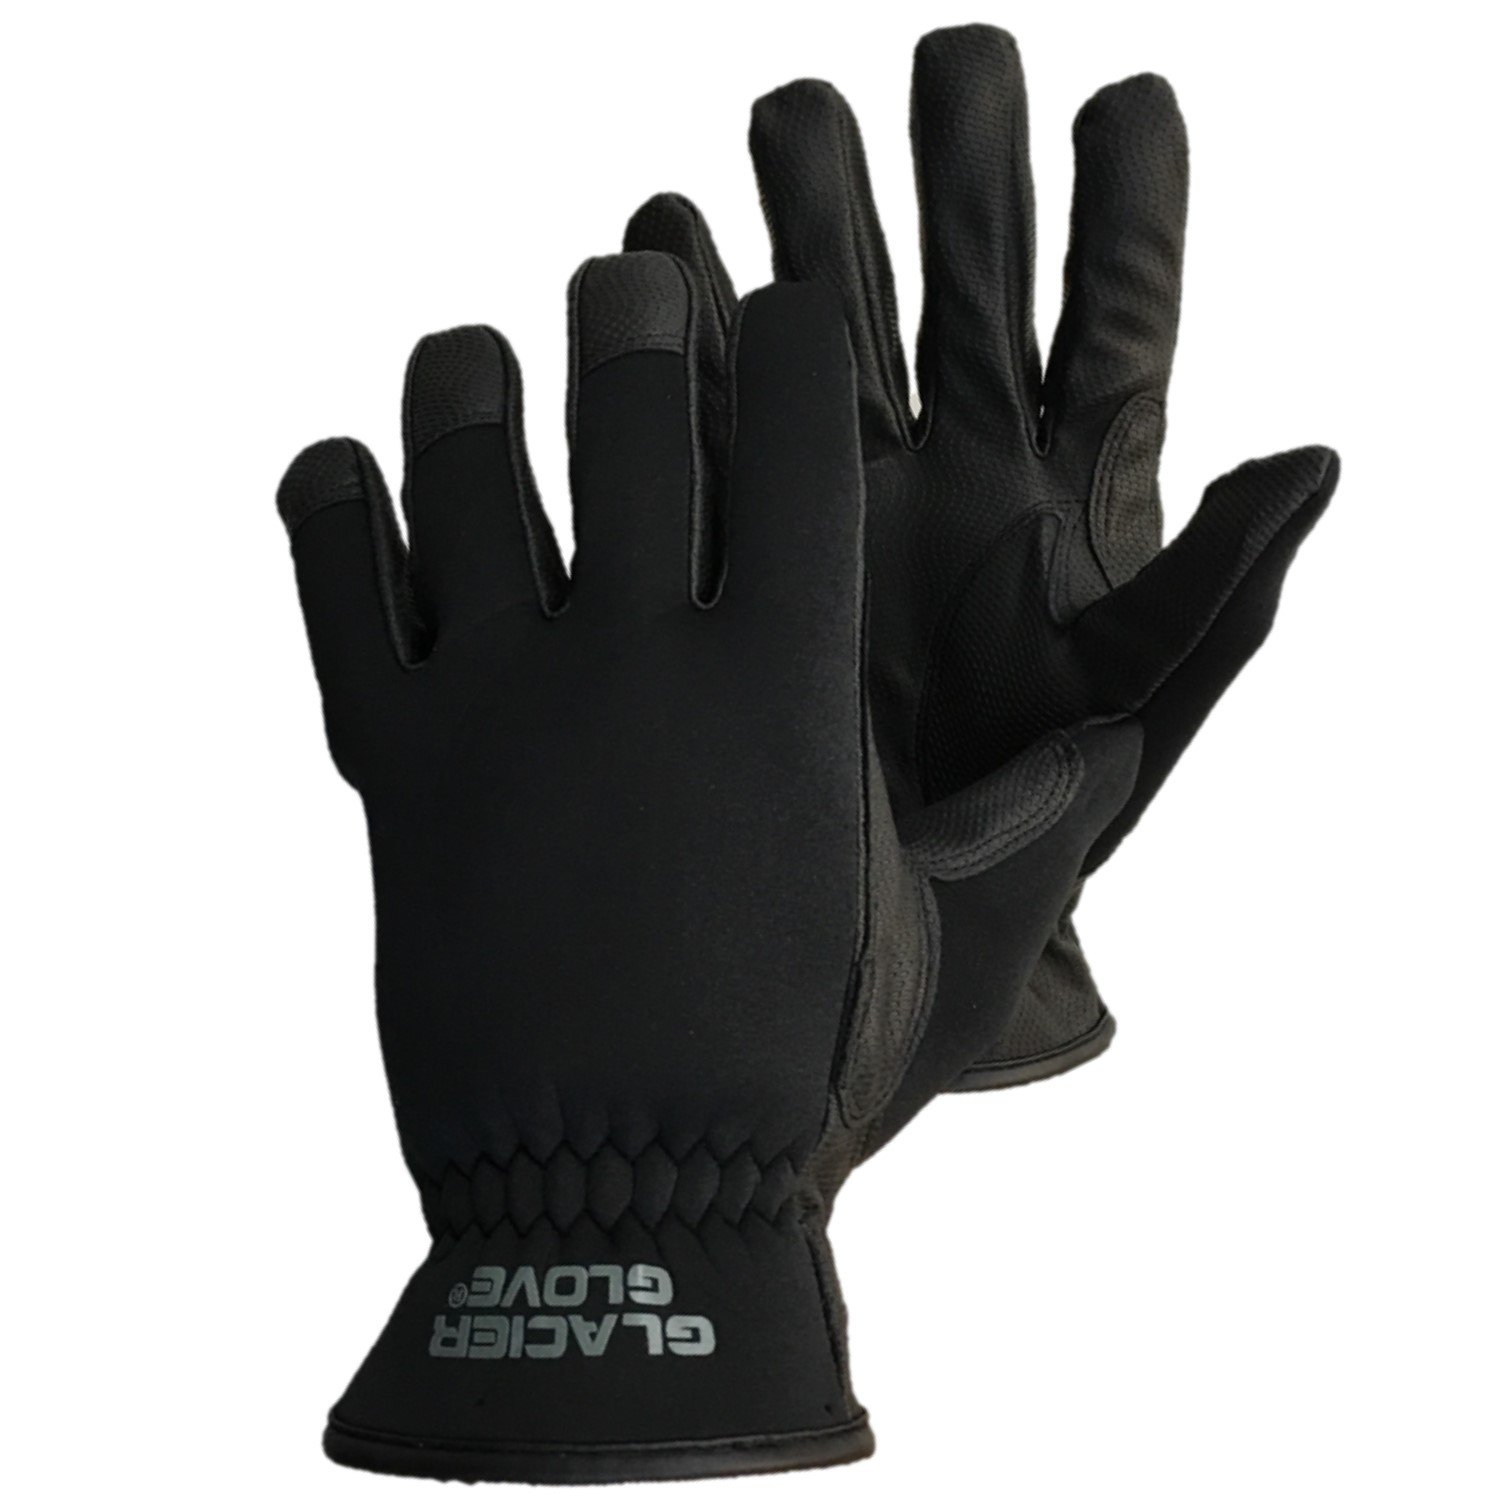 Glacier Outdoor Premium Lightweight Shooting and Tactical Glove (Black) 782BK